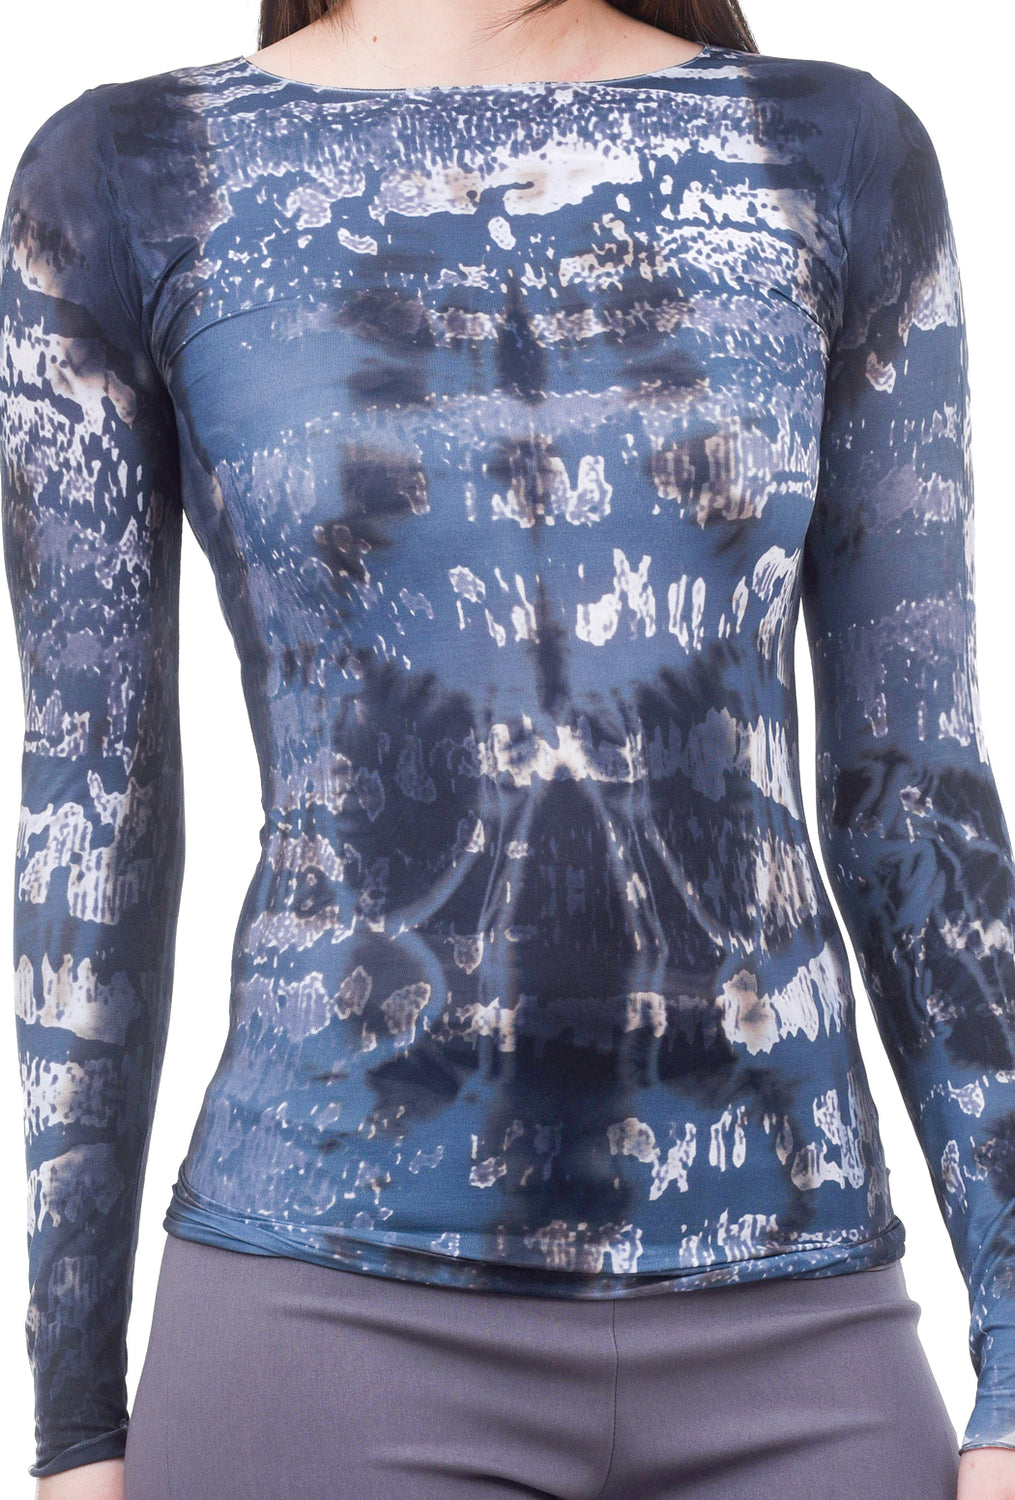 AMB Designs Primitive Raw Edge Top, Charcoal One Size Charcoal